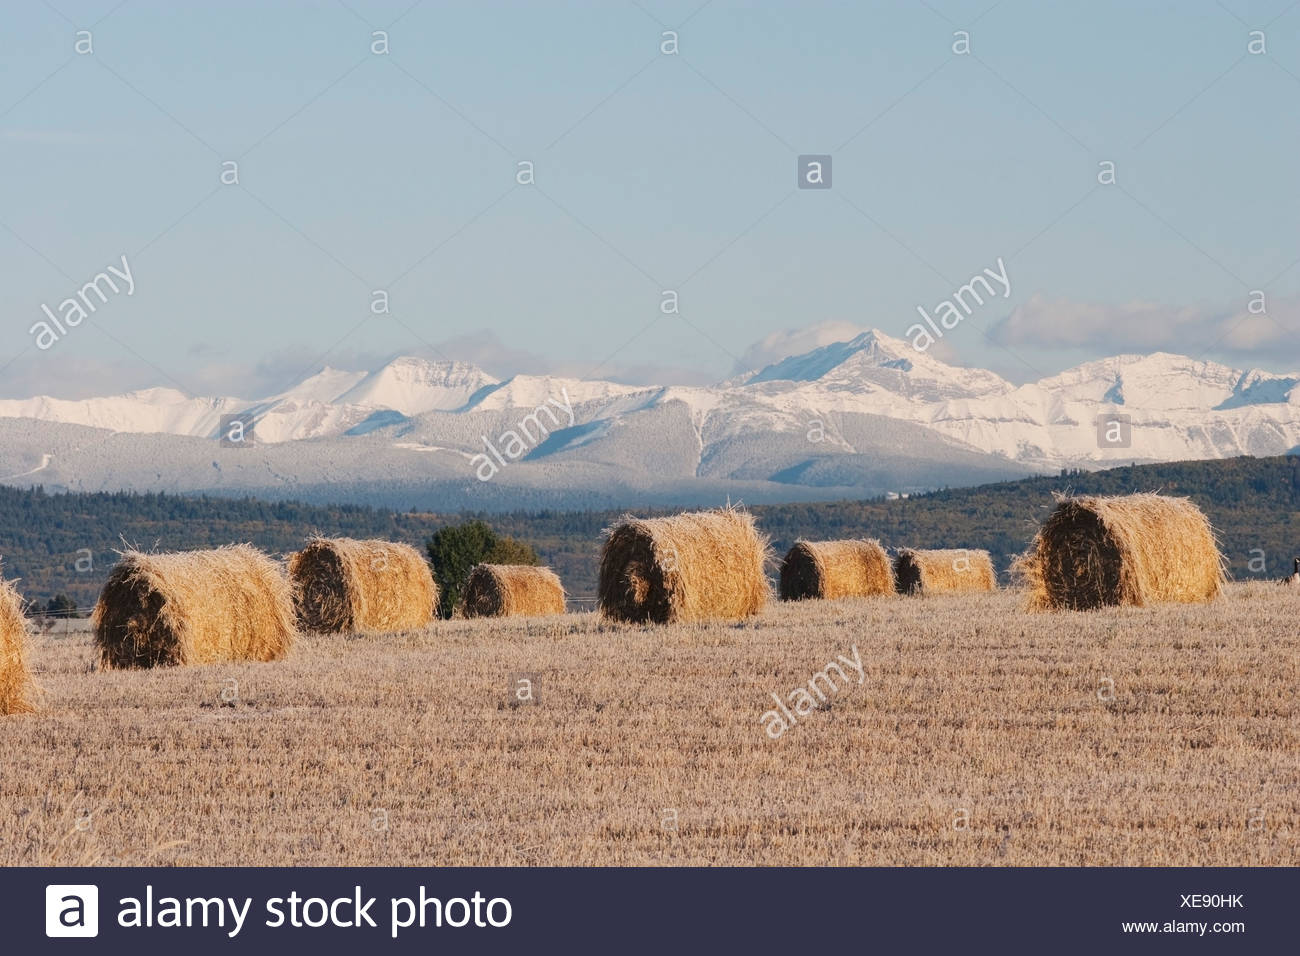 Frosted Hay Bales In Cut Field, Alberta, Canada - Stock Image